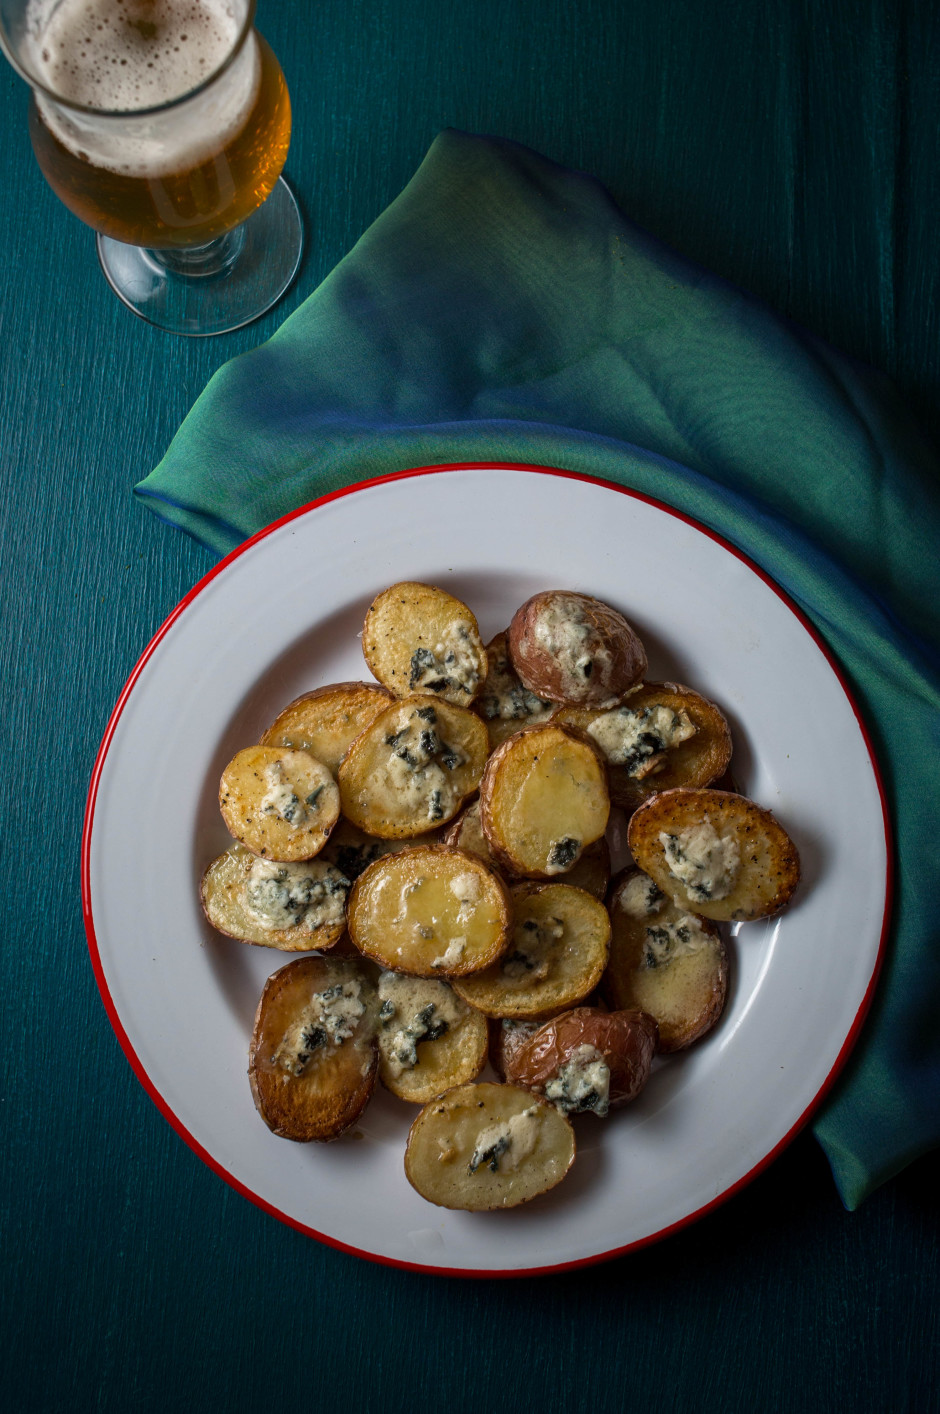 Roasted Potatoes with Arethusa Blue Cheese, paired with Wytchmaker Farmhouse Rye IPA